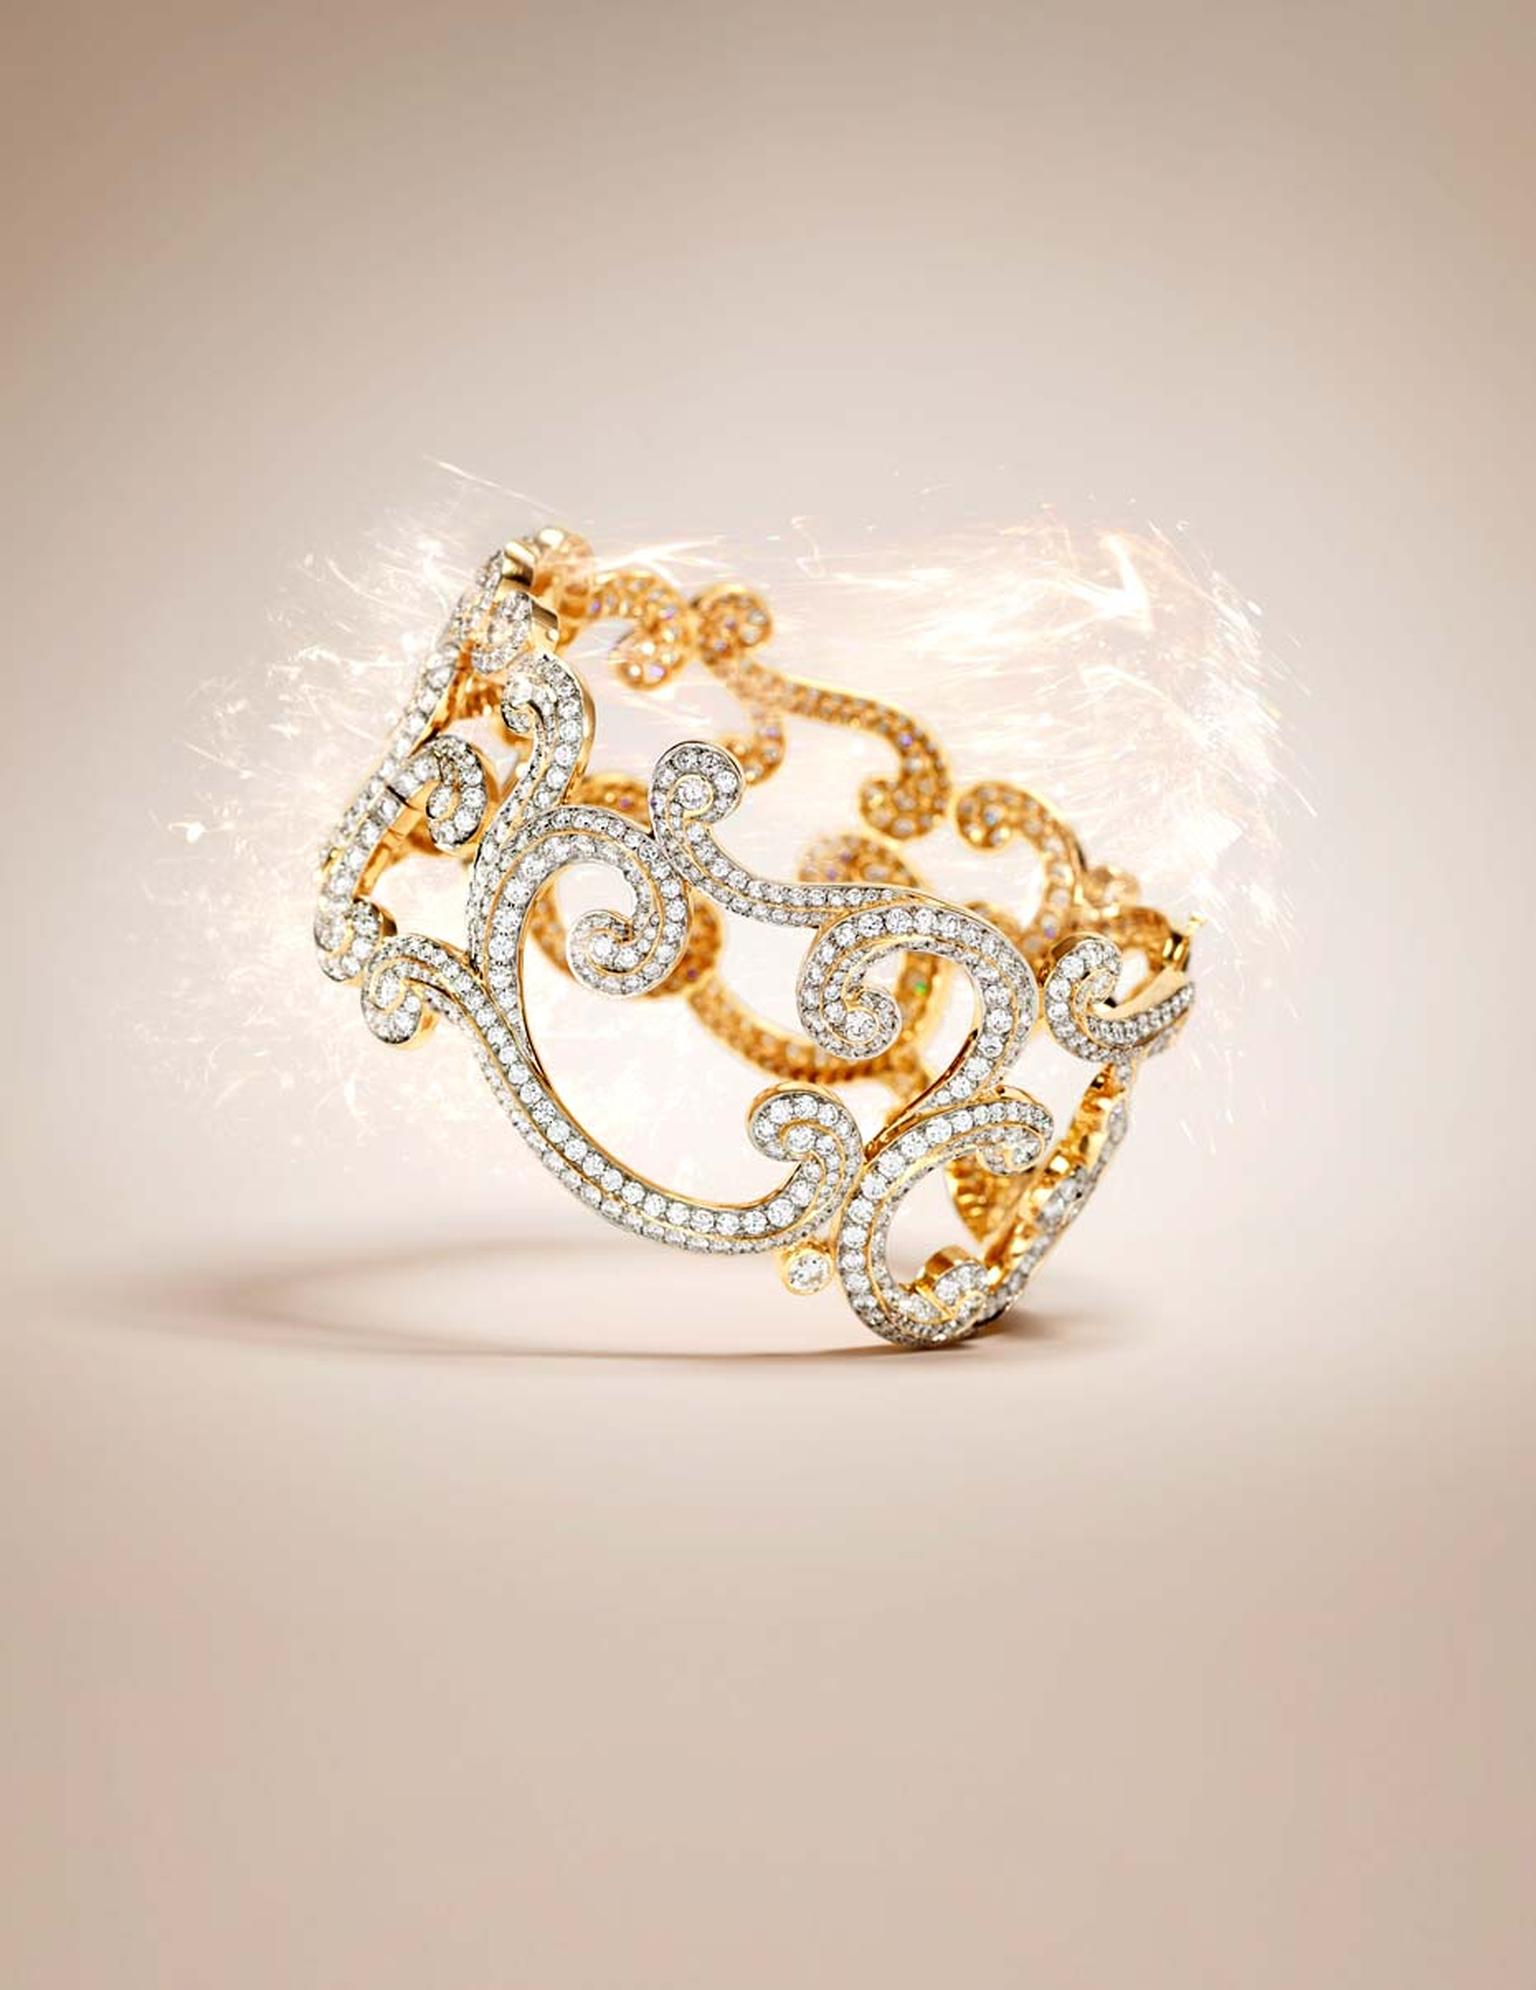 Fabergé Rococo Lace diamond bangle in rose gold.